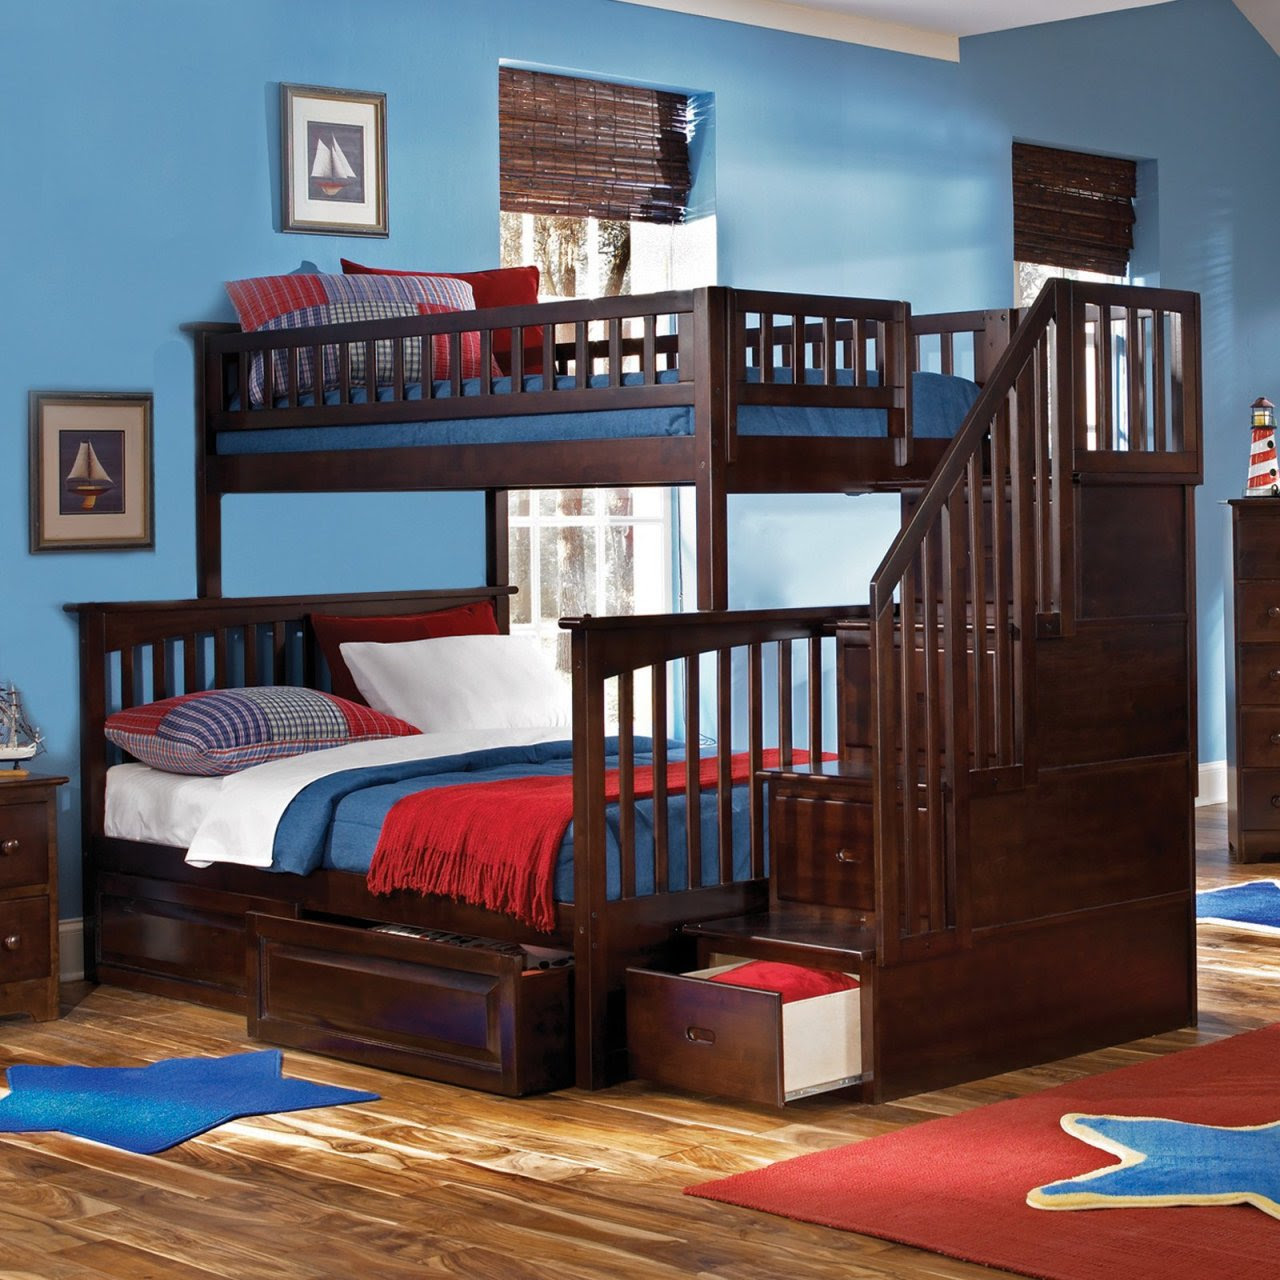 Cool Awesome room bedroom bed loft dream room bunk beds bunkbed ...